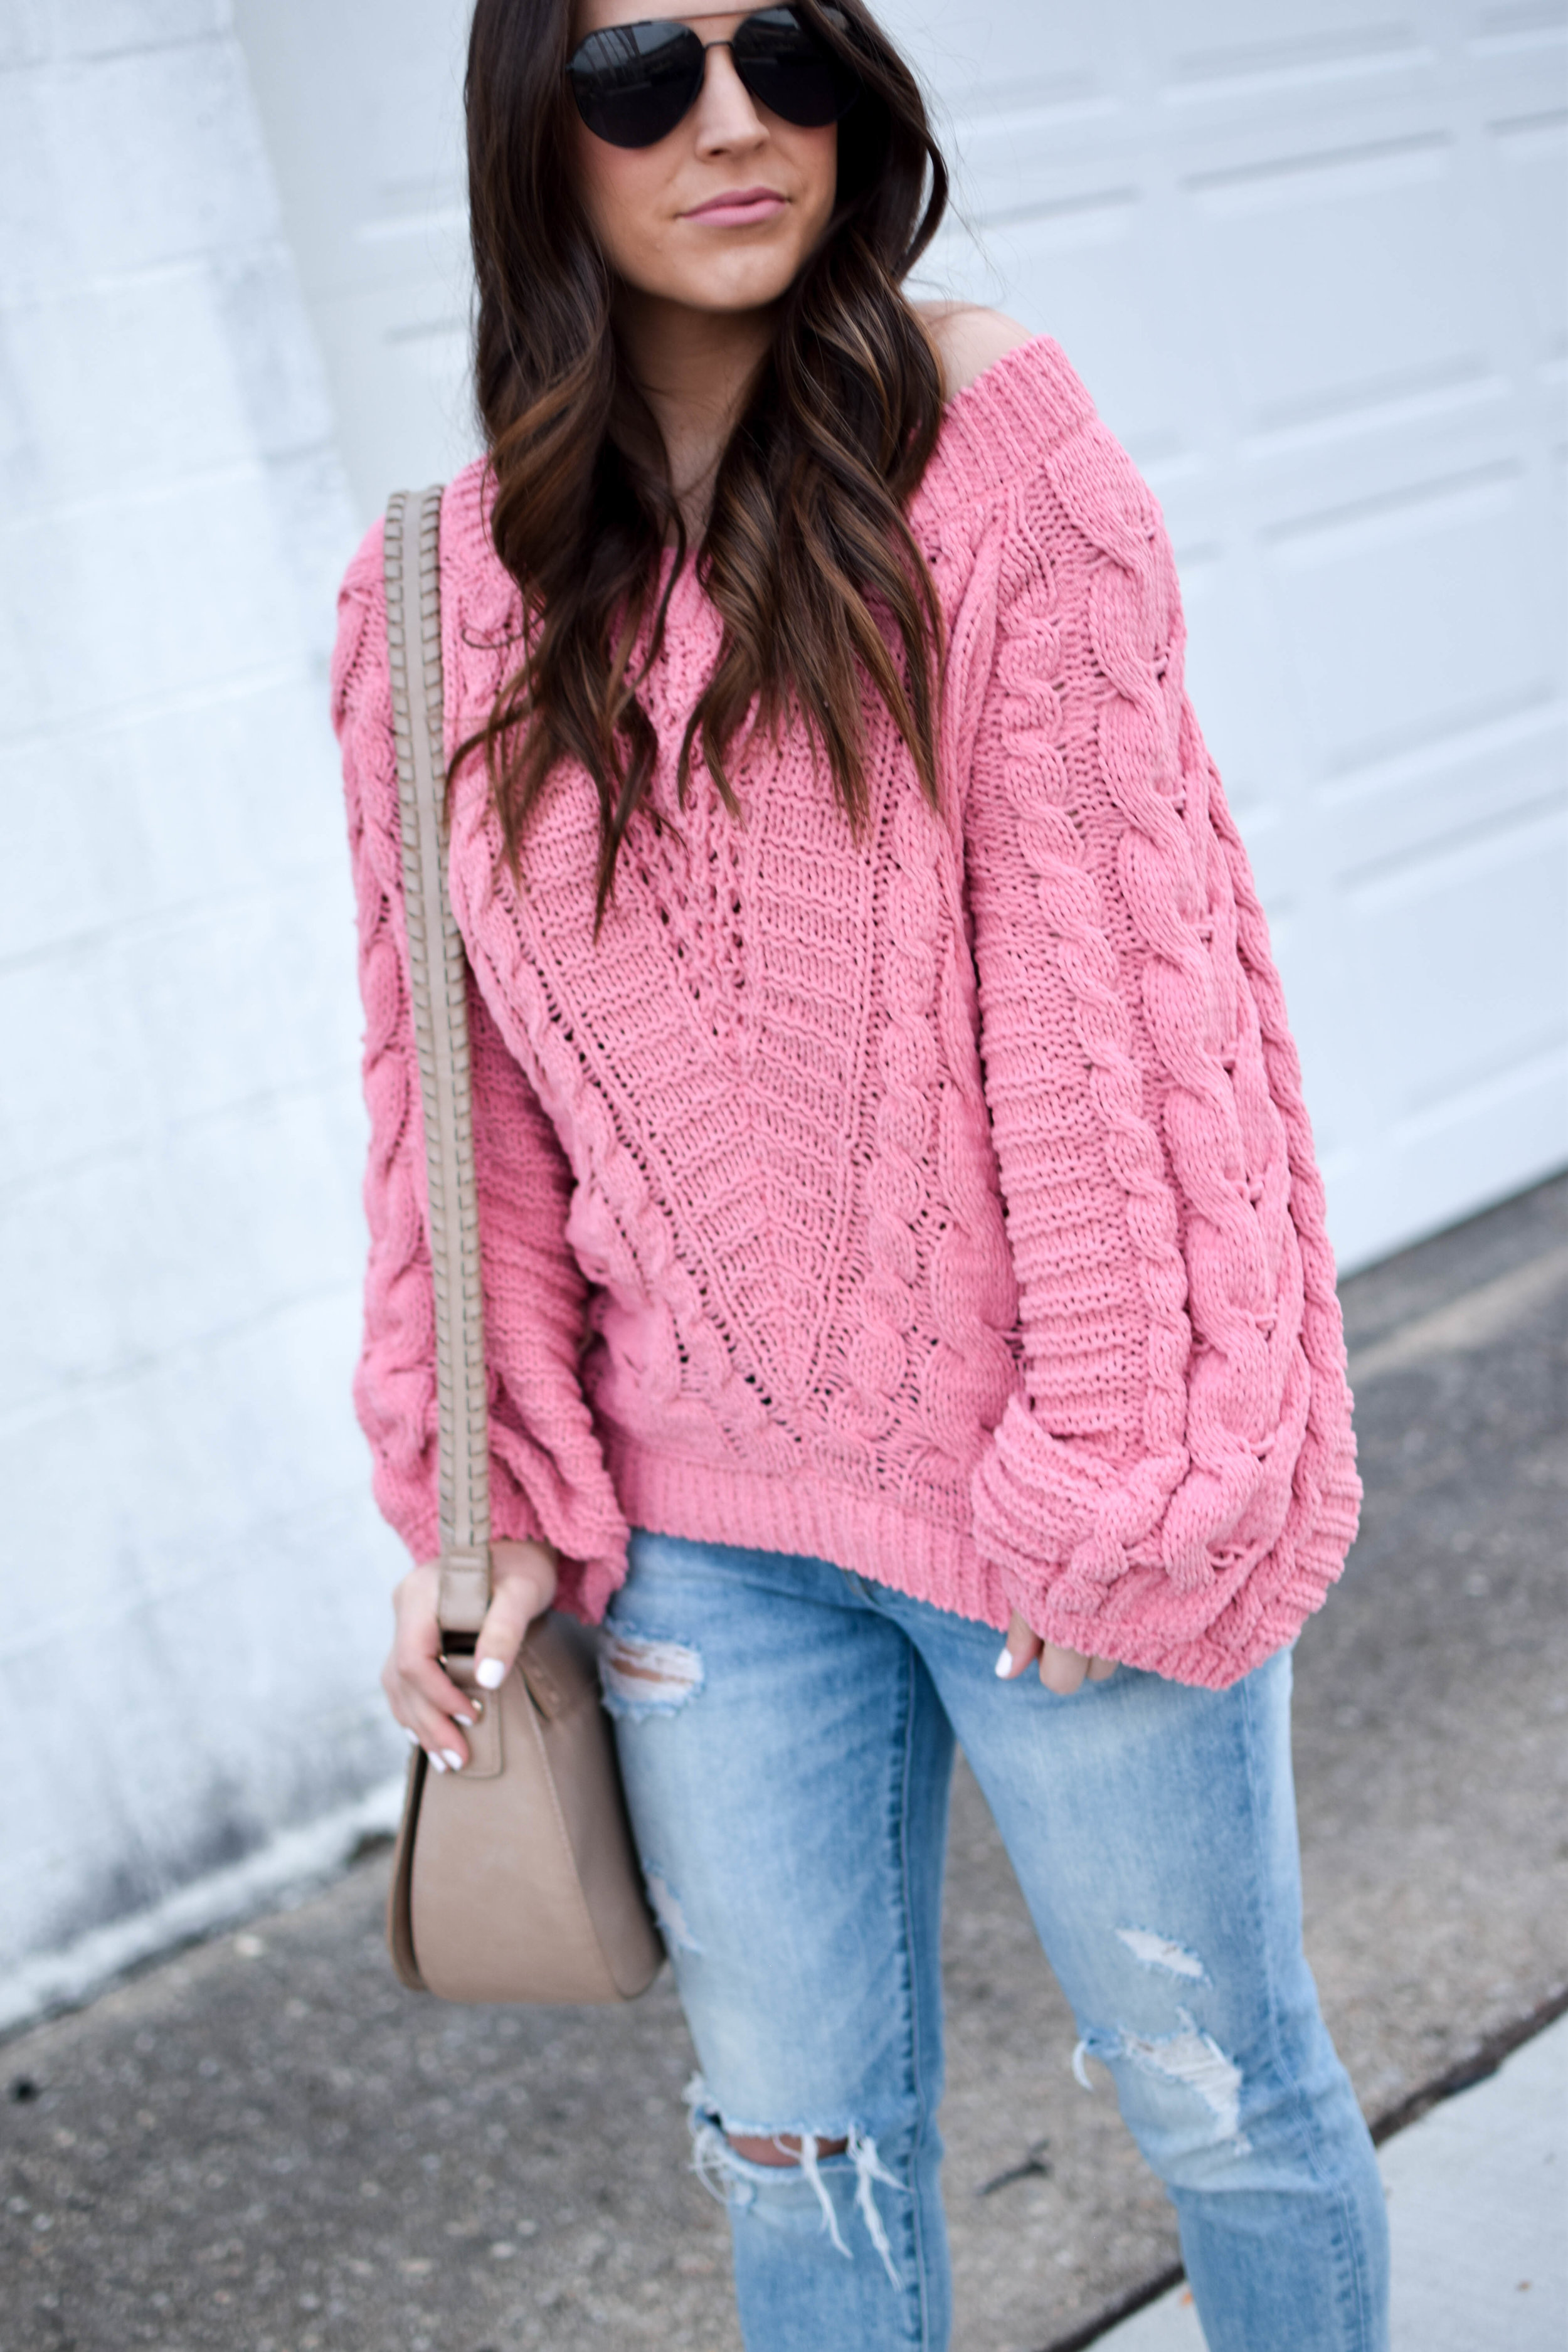 Cozy Chenille Sweater | Pine Barren Beauty | fall outfit idea, fall outfit inspiration, fall feels